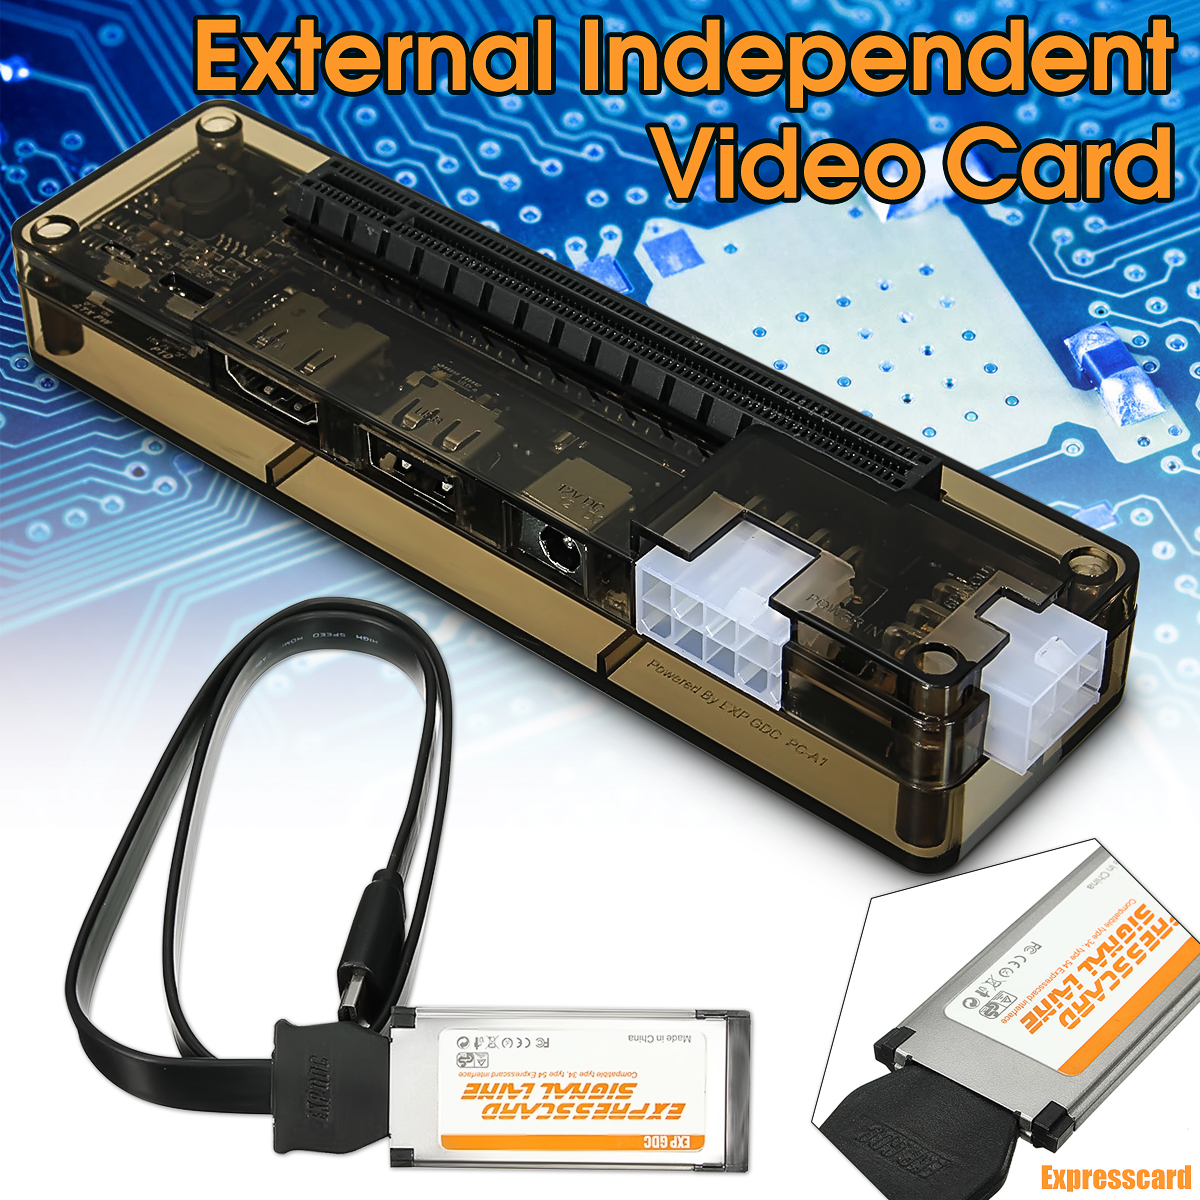 Mini PCI-E Scheda Video Indipendente Dock EXP GDC Fit Bestia Del Computer Portatile Esterno Esterno Scheda Video Indipendente Dock Express Card